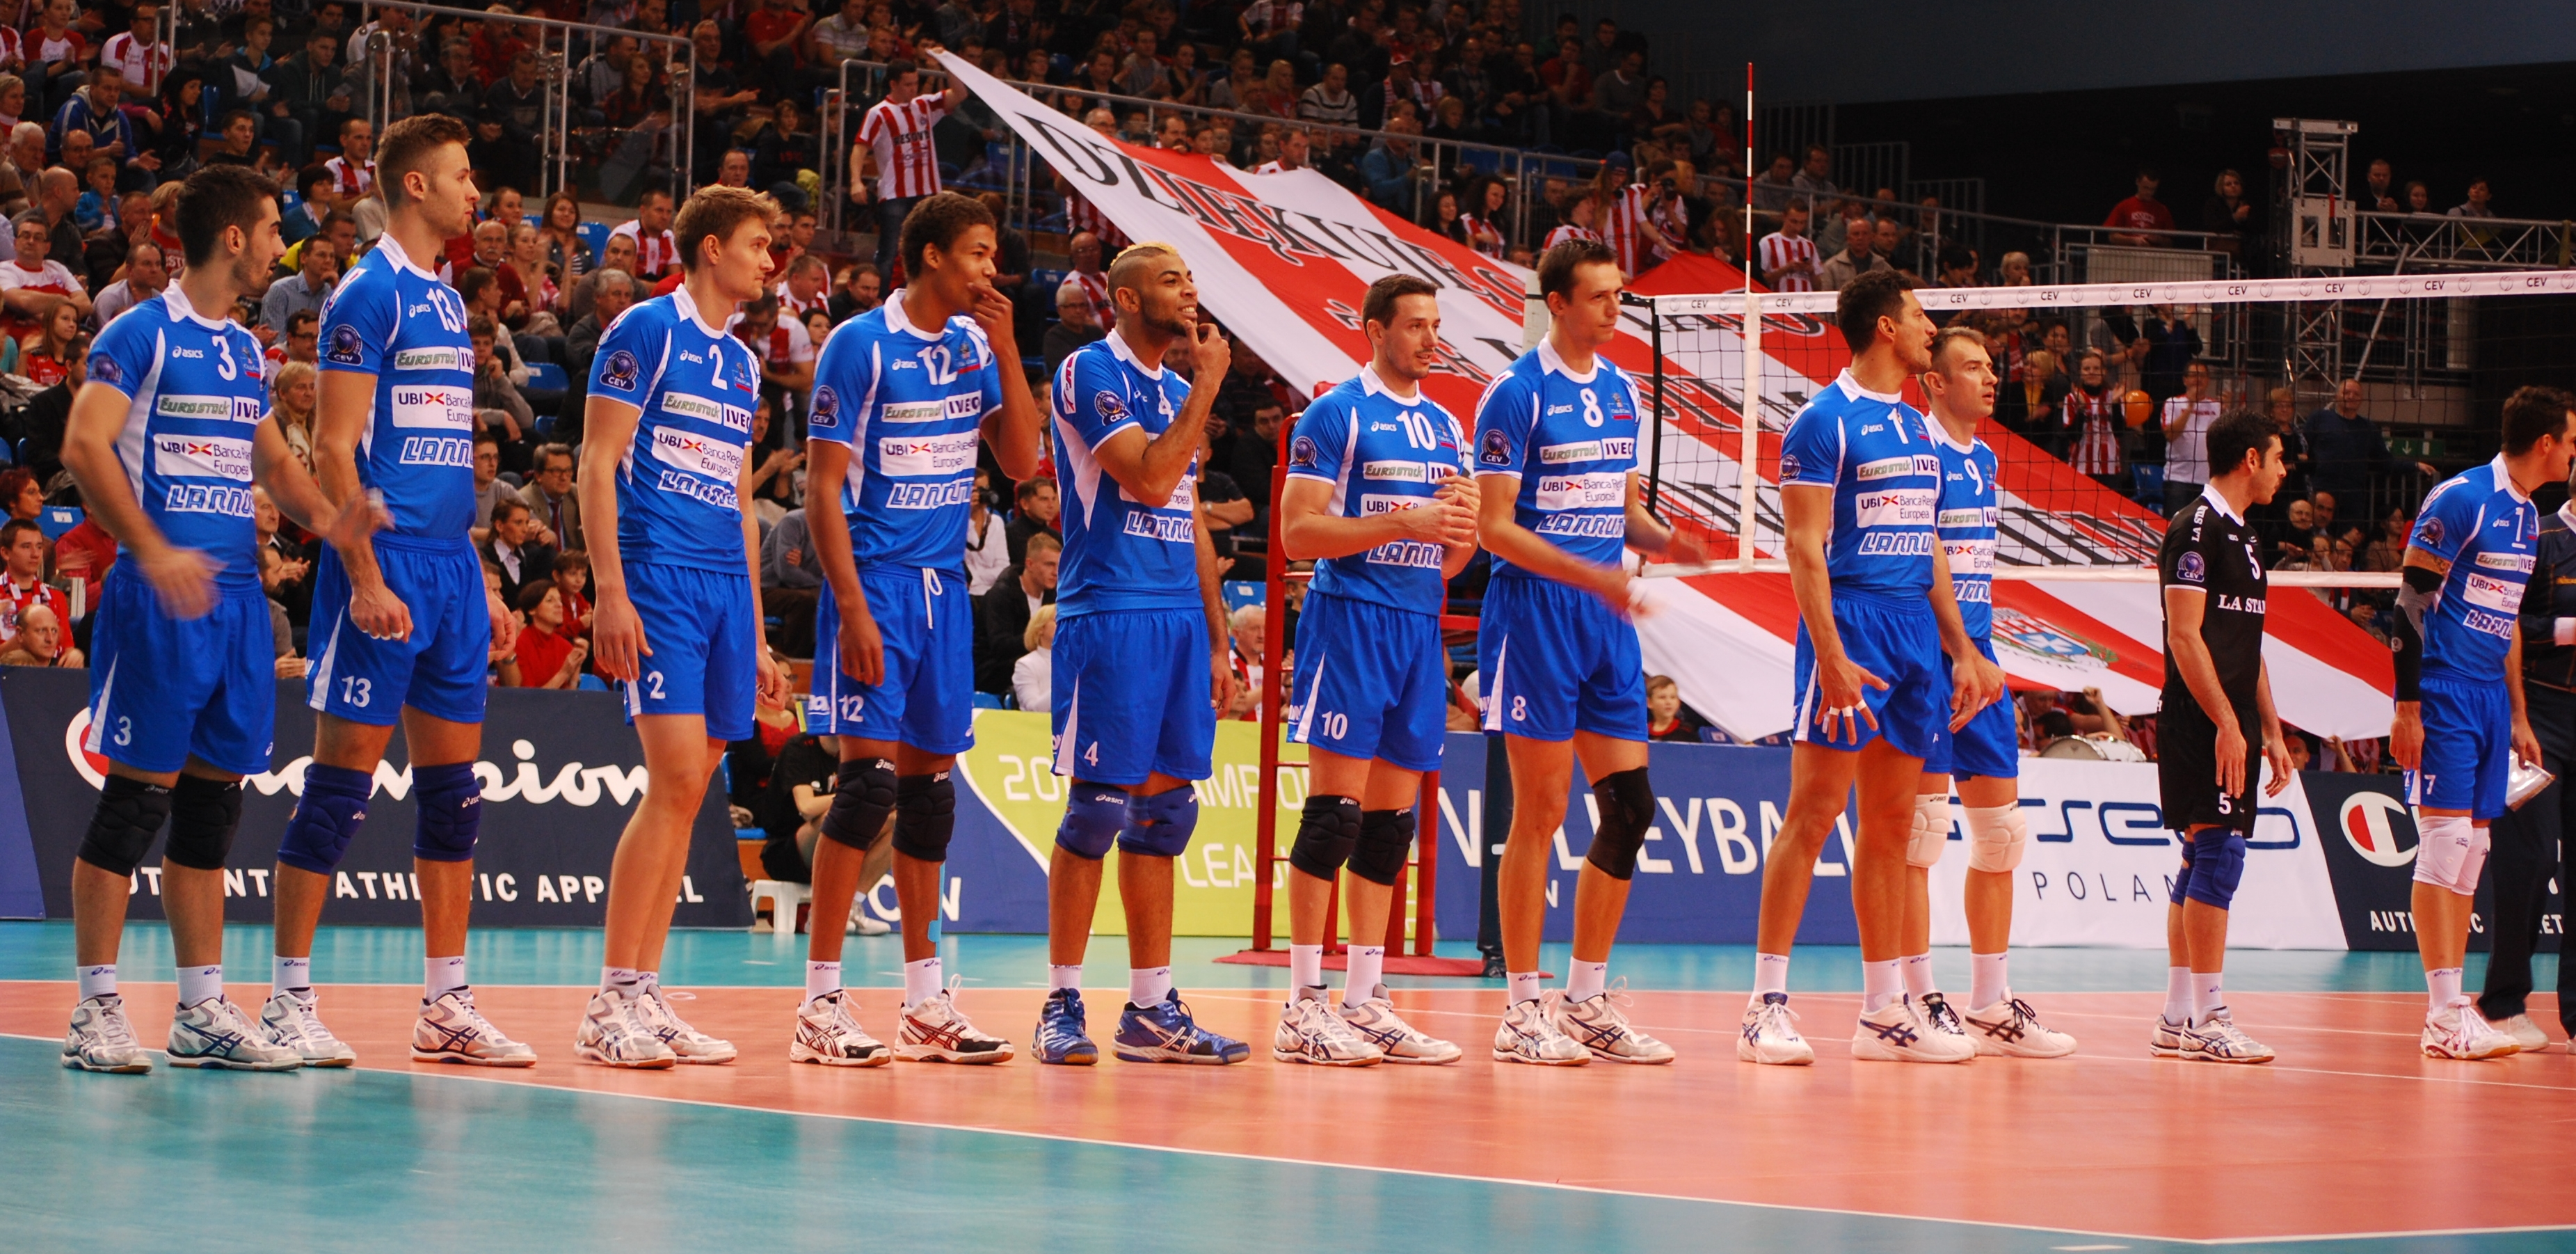 Image result for piemonte volley italia